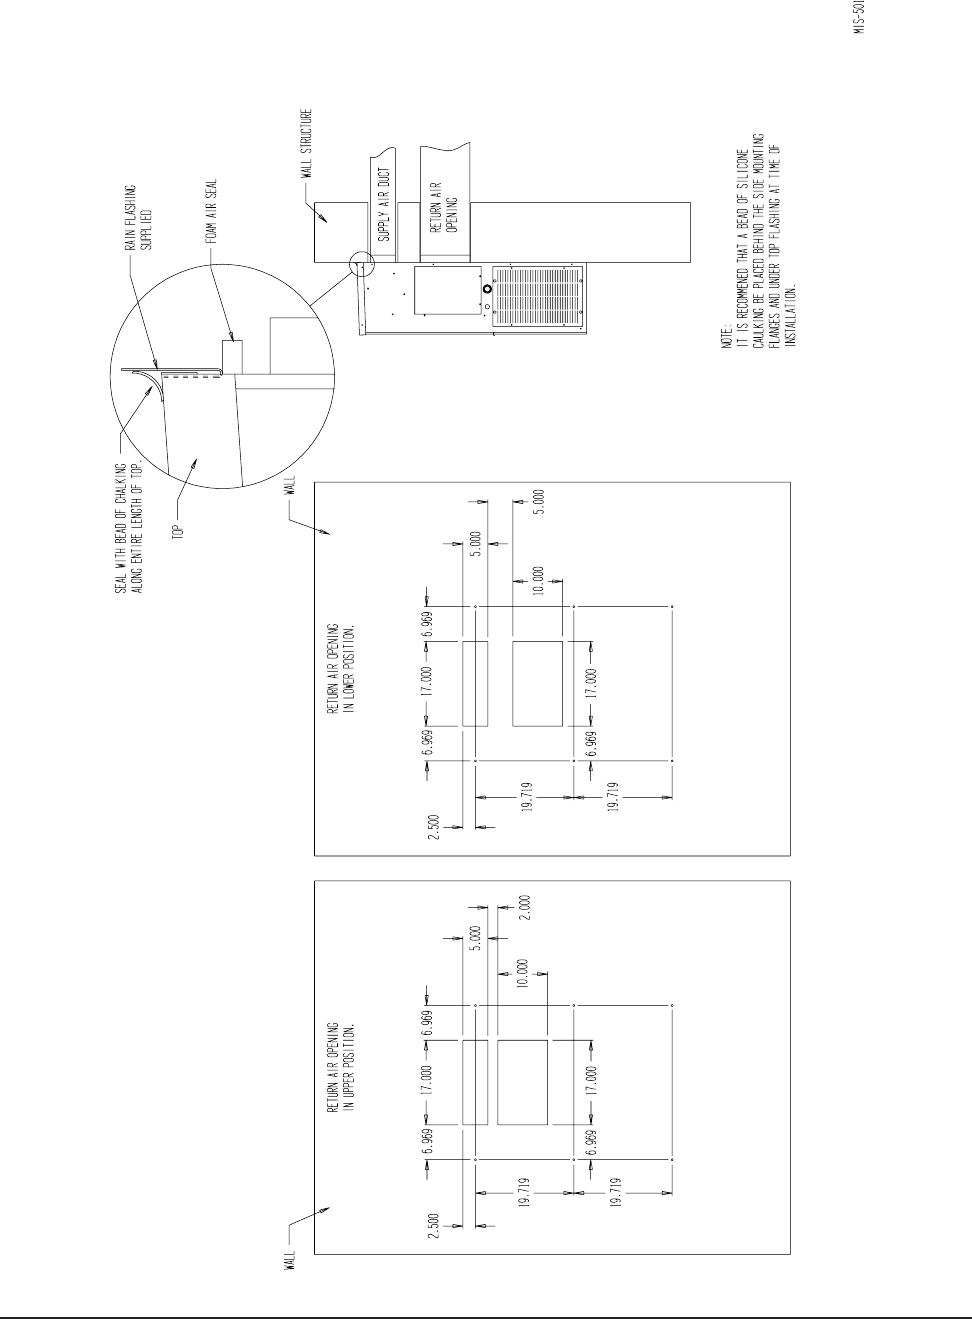 Bard Air Conditioner Wiring Diagrams Diagram W17a1 User Hampton Bay Pull Chain Switch Intertherm